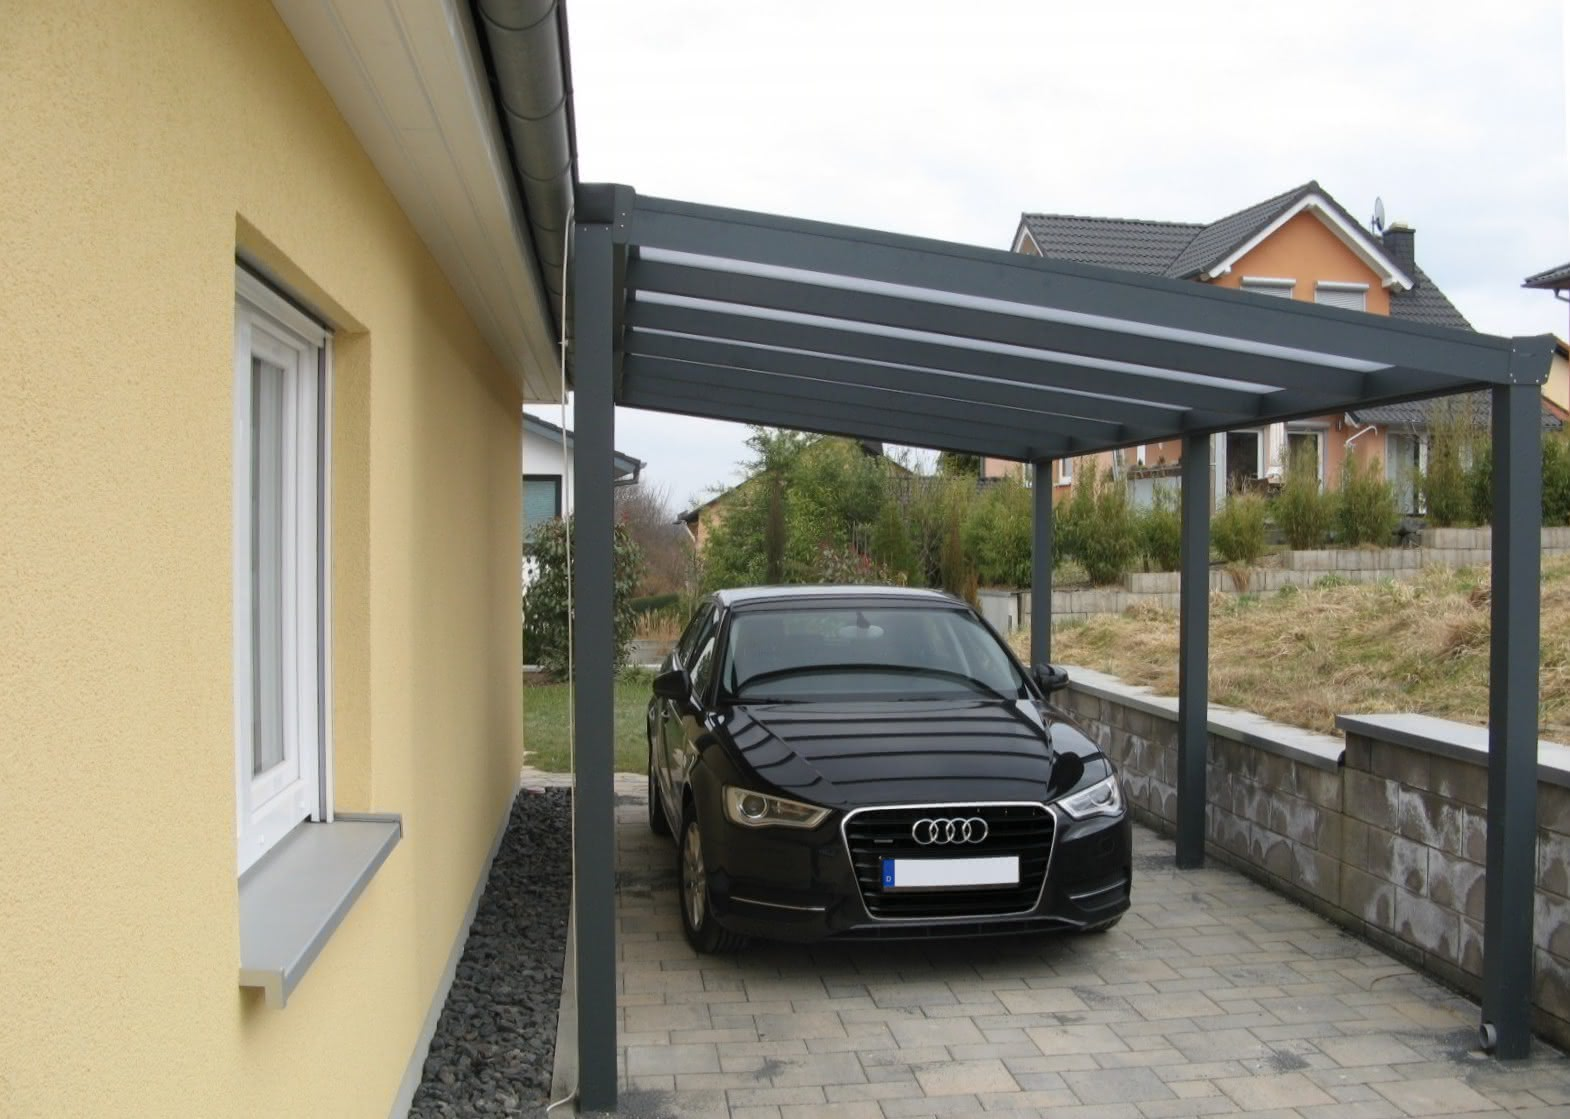 pultdach carport good carports mit pultdach with pultdach. Black Bedroom Furniture Sets. Home Design Ideas